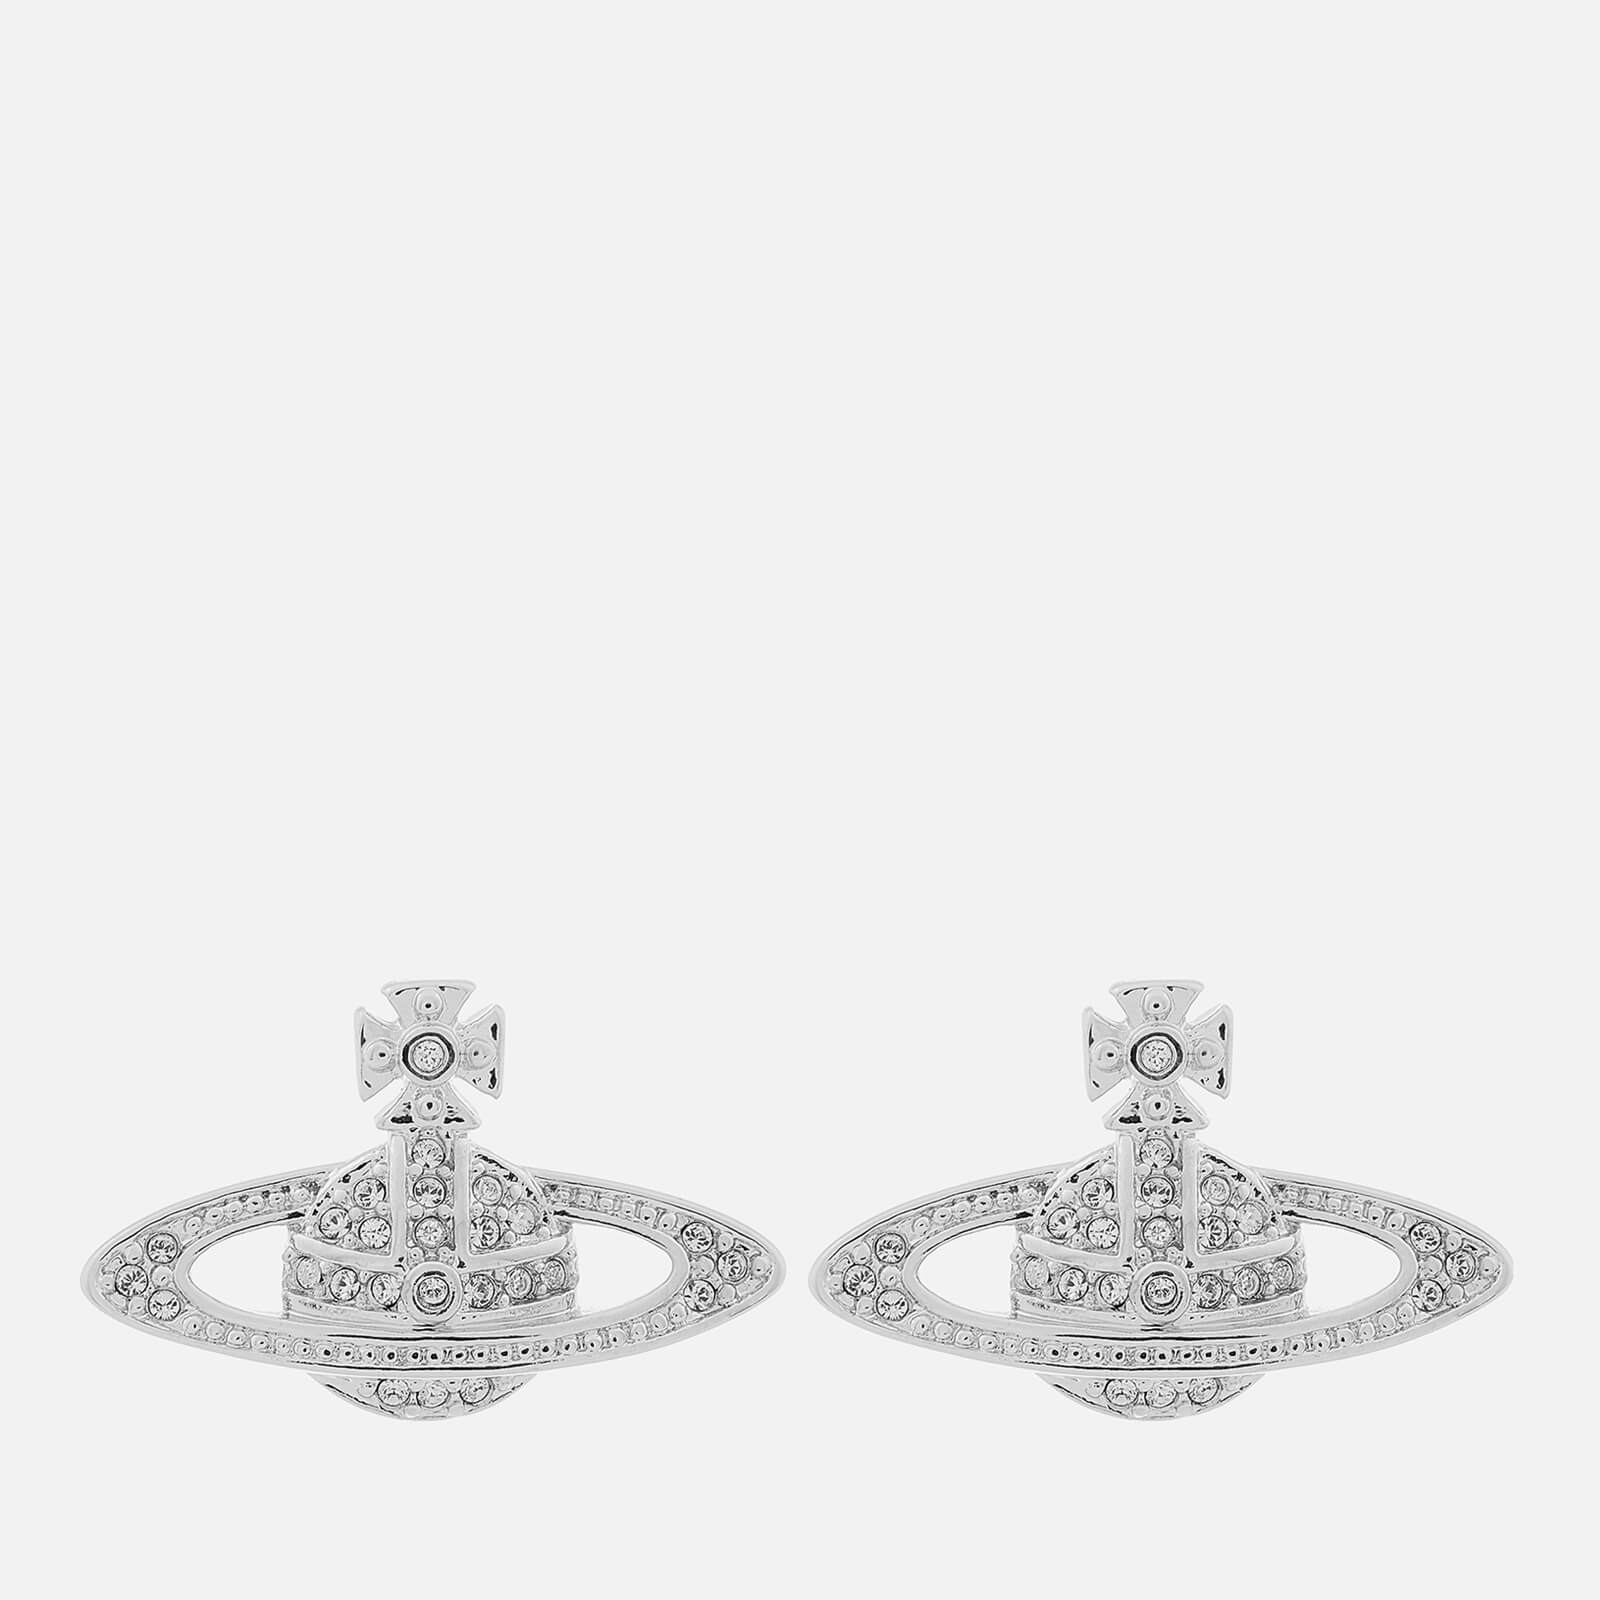 2c41aa81b4f Vivienne Westwood Women's Mini Bas Relief Earrings - Rhodium - Free UK  Delivery over £50